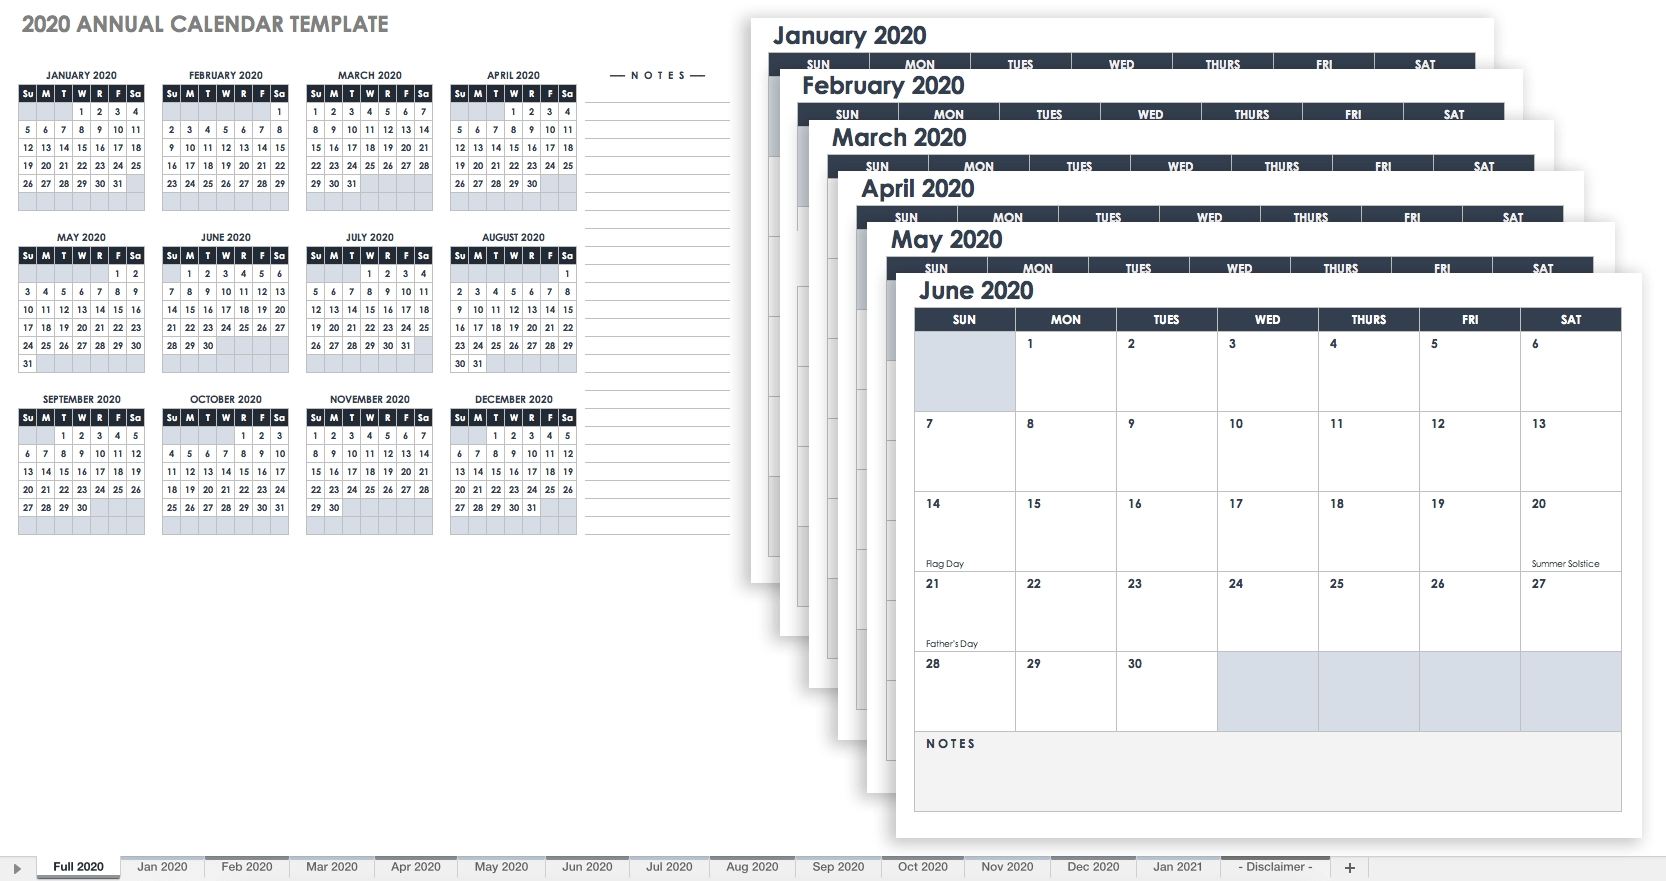 Free Blank Calendar Templates - Smartsheet with regard to Blank Monthly Calendar With Lines